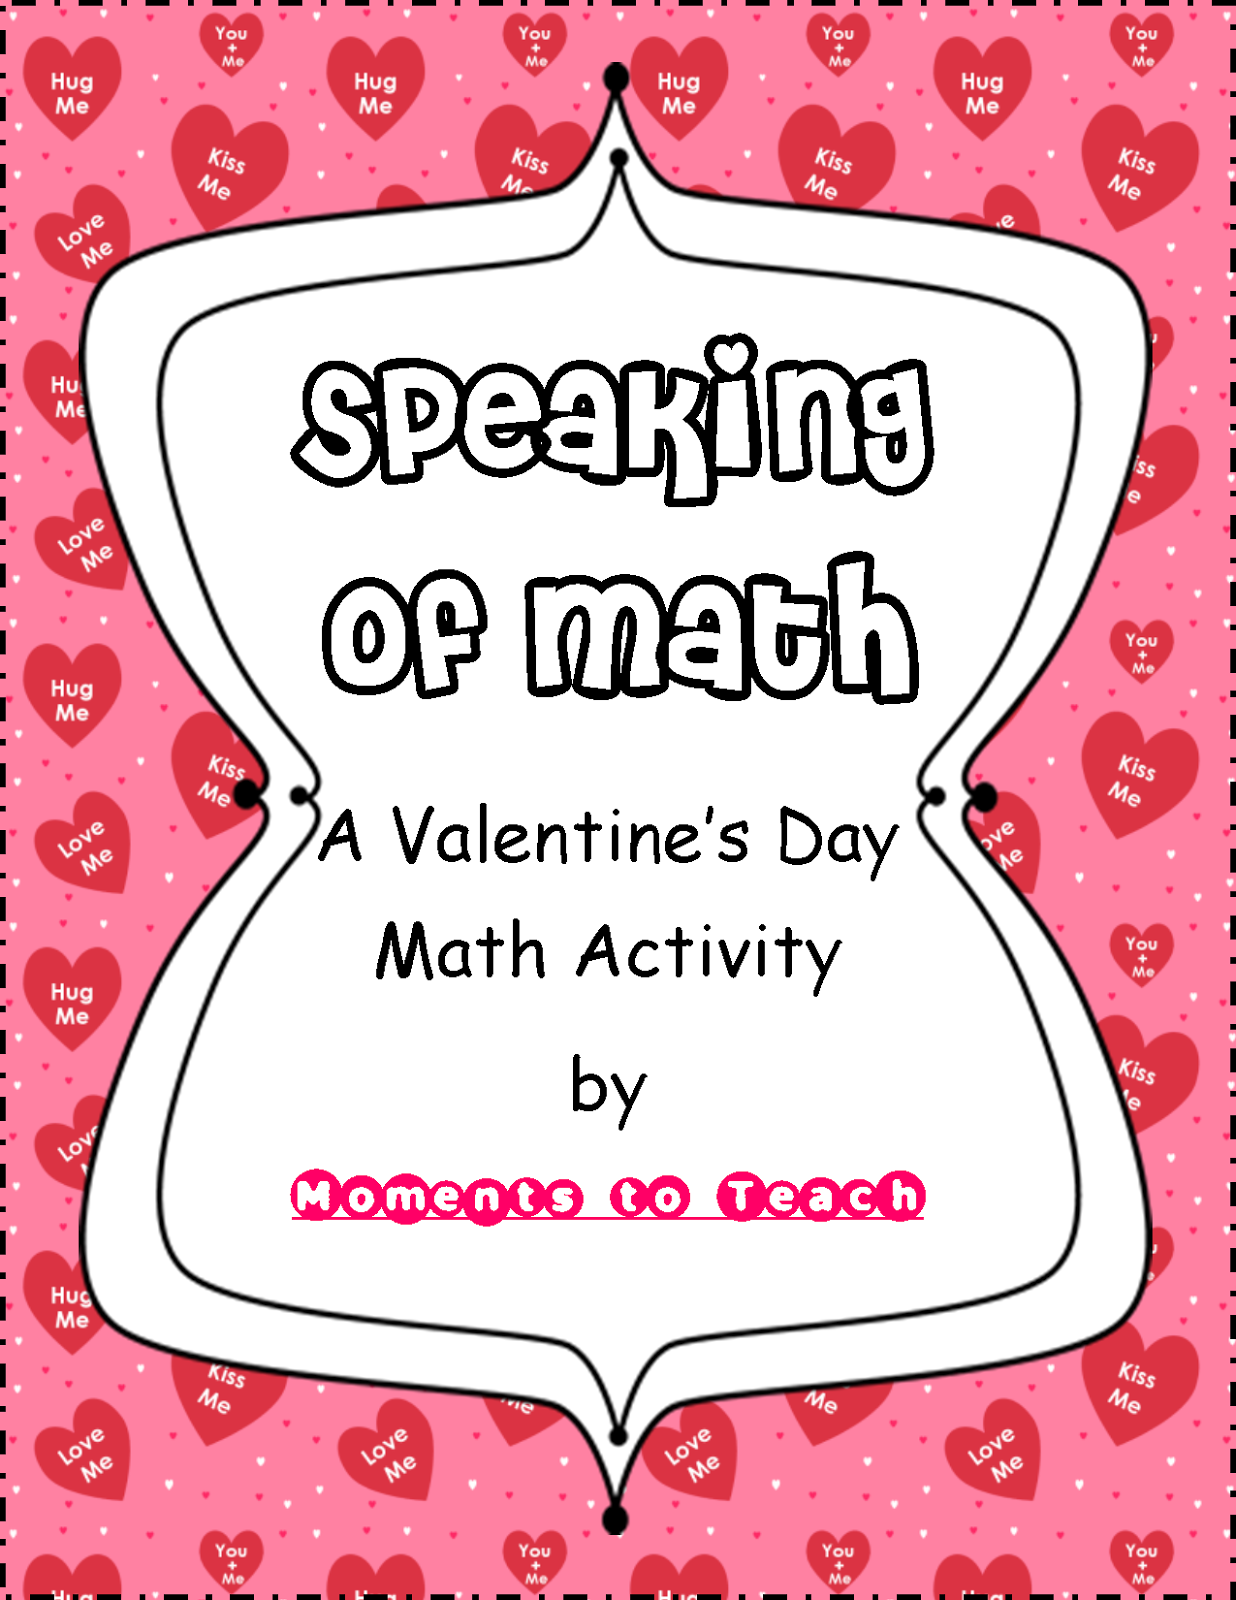 http://www.teacherspayteachers.com/Product/Speaking-of-Math-A-Valentine-Math-Activity-1106056